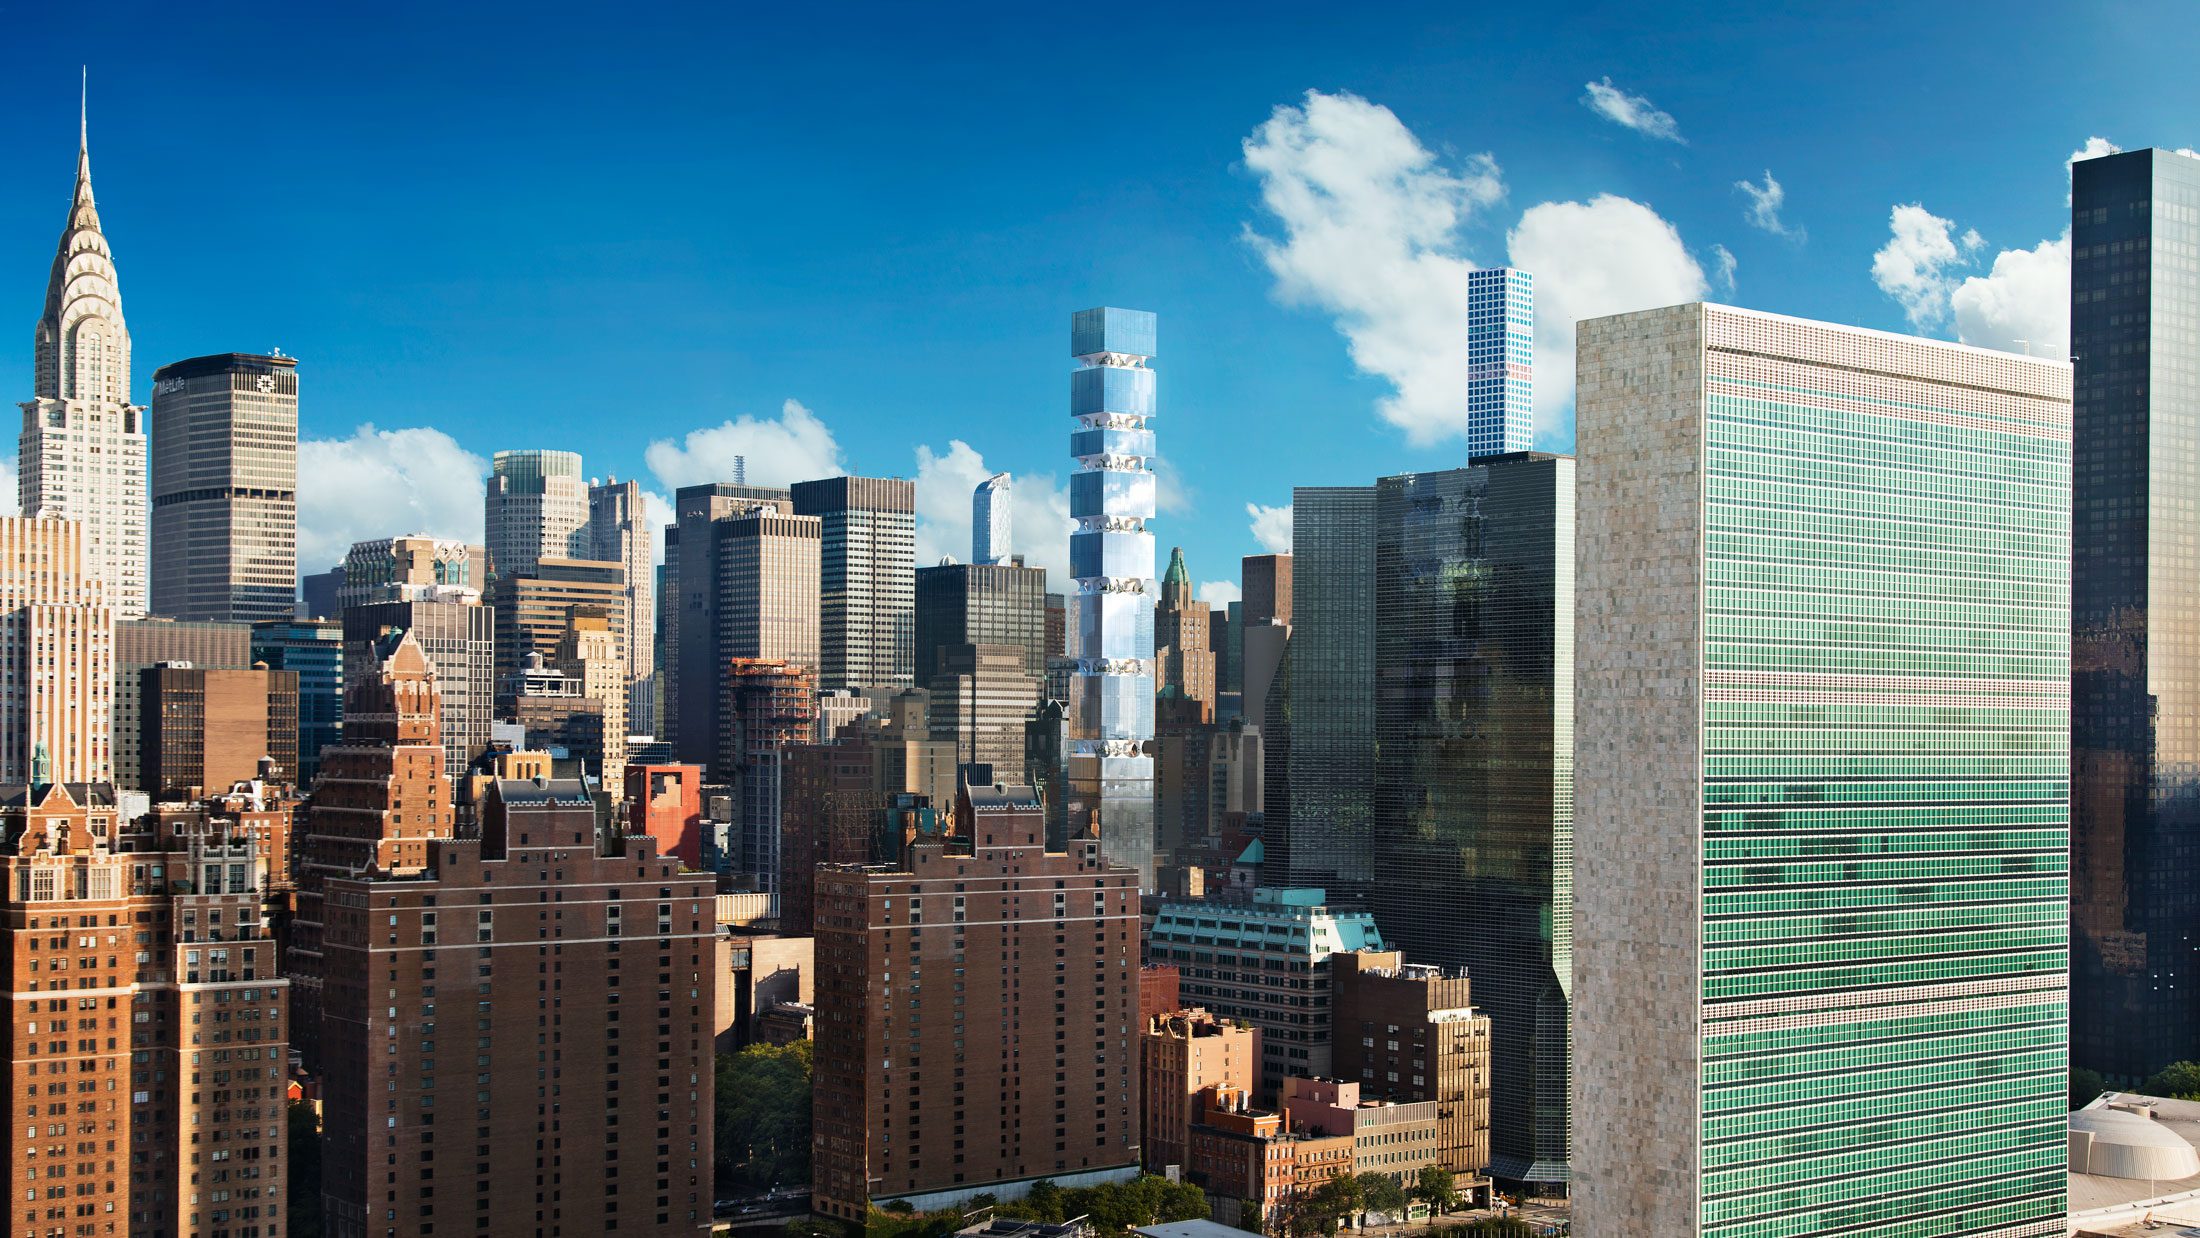 Architectural Rendering of the exterior of the 303 East 44th Street project located in Midtown East, New York City